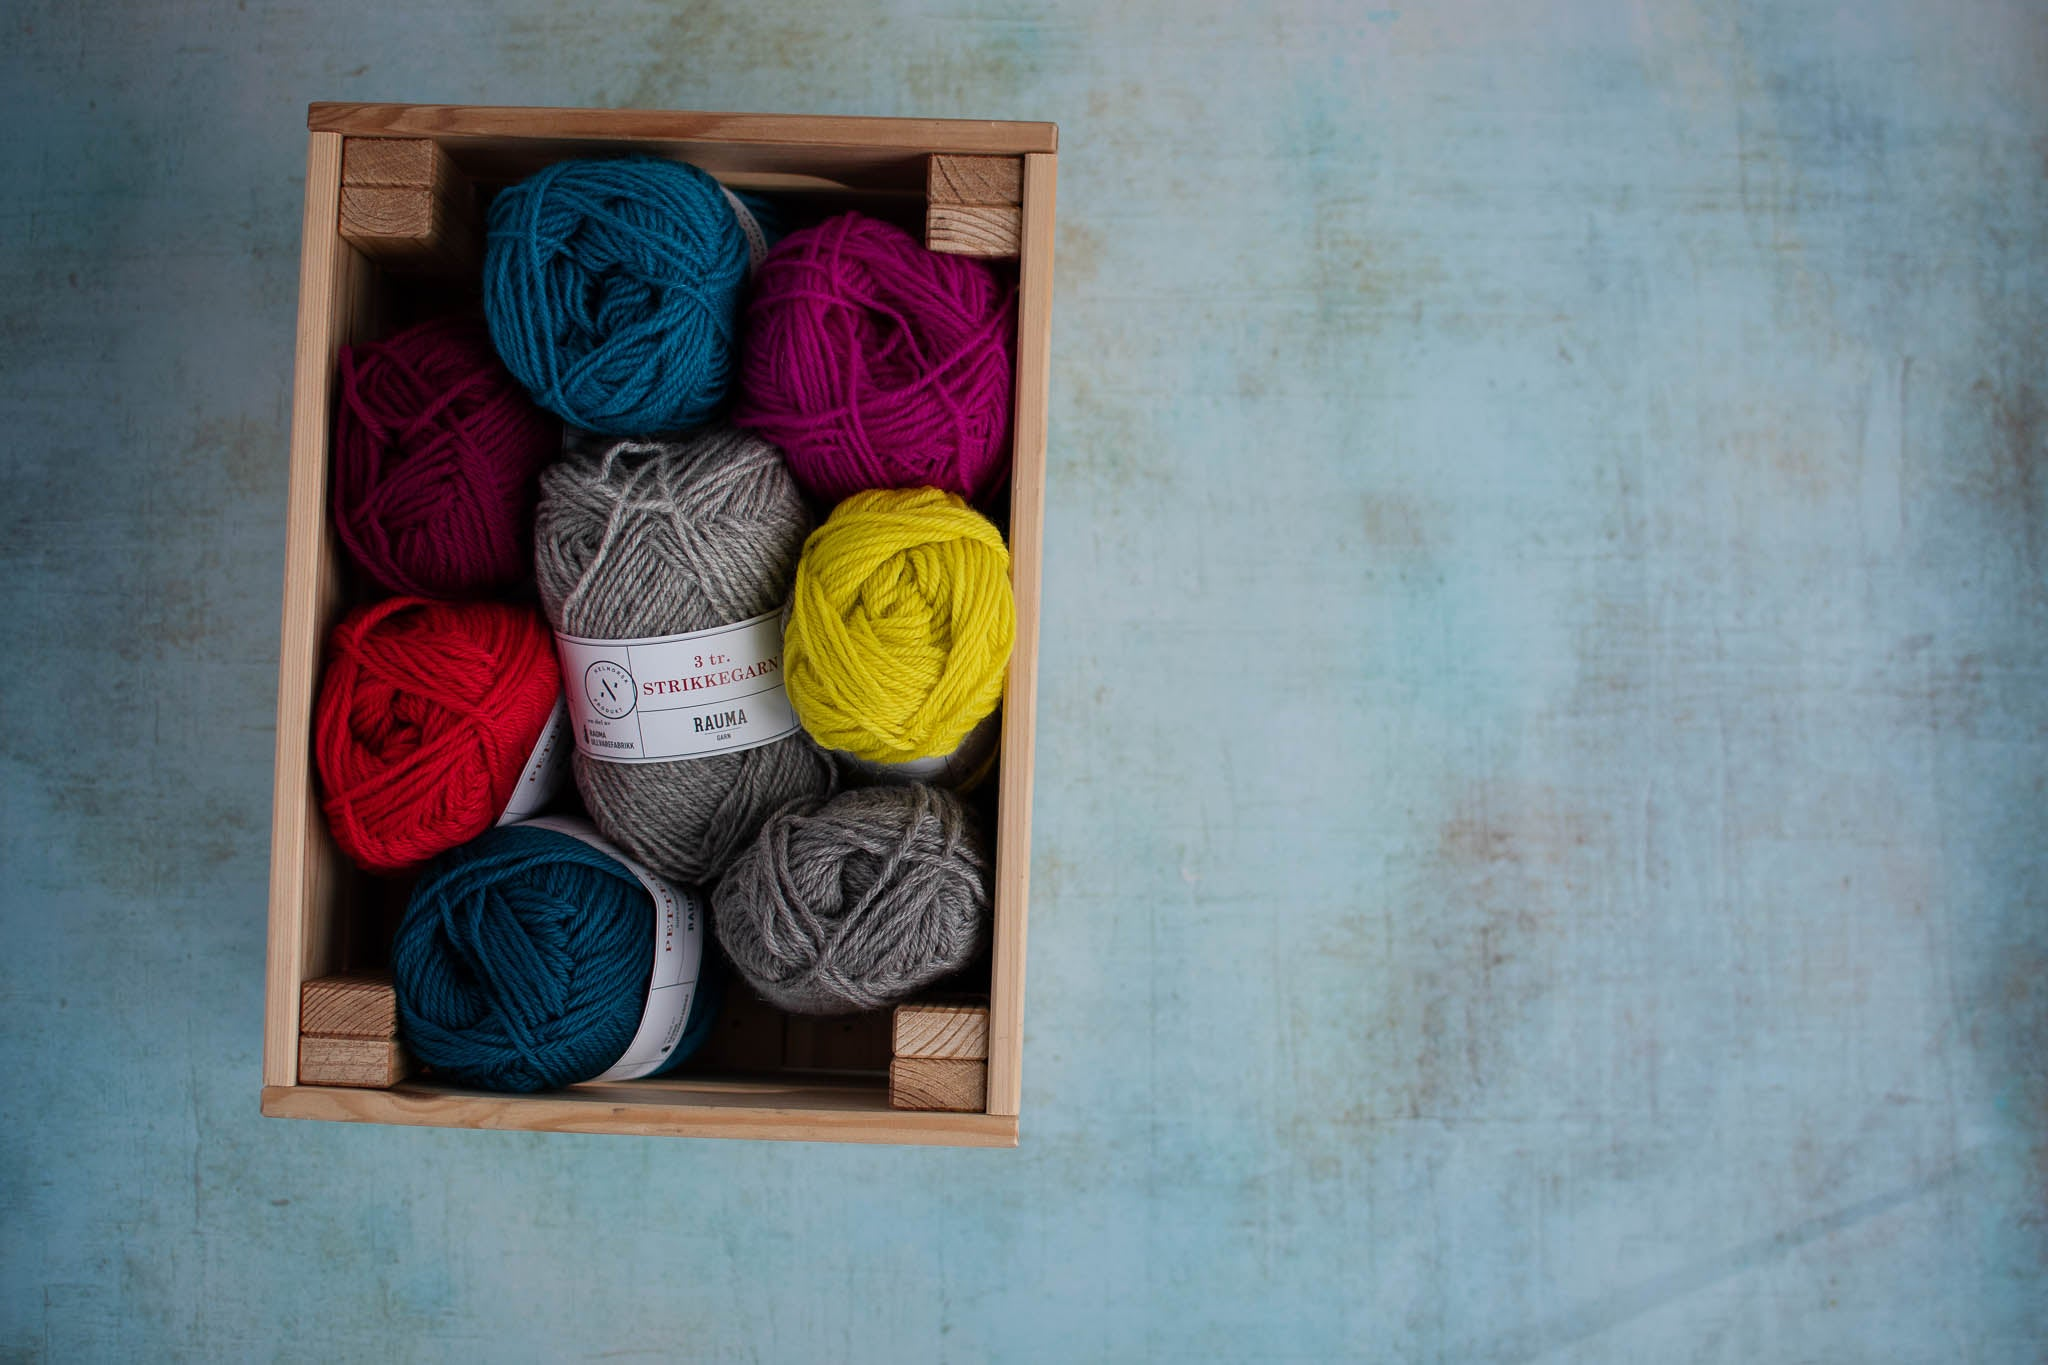 A small wooden box holds balls of yarn in a variety of colours. The box is placed to the left of the image.